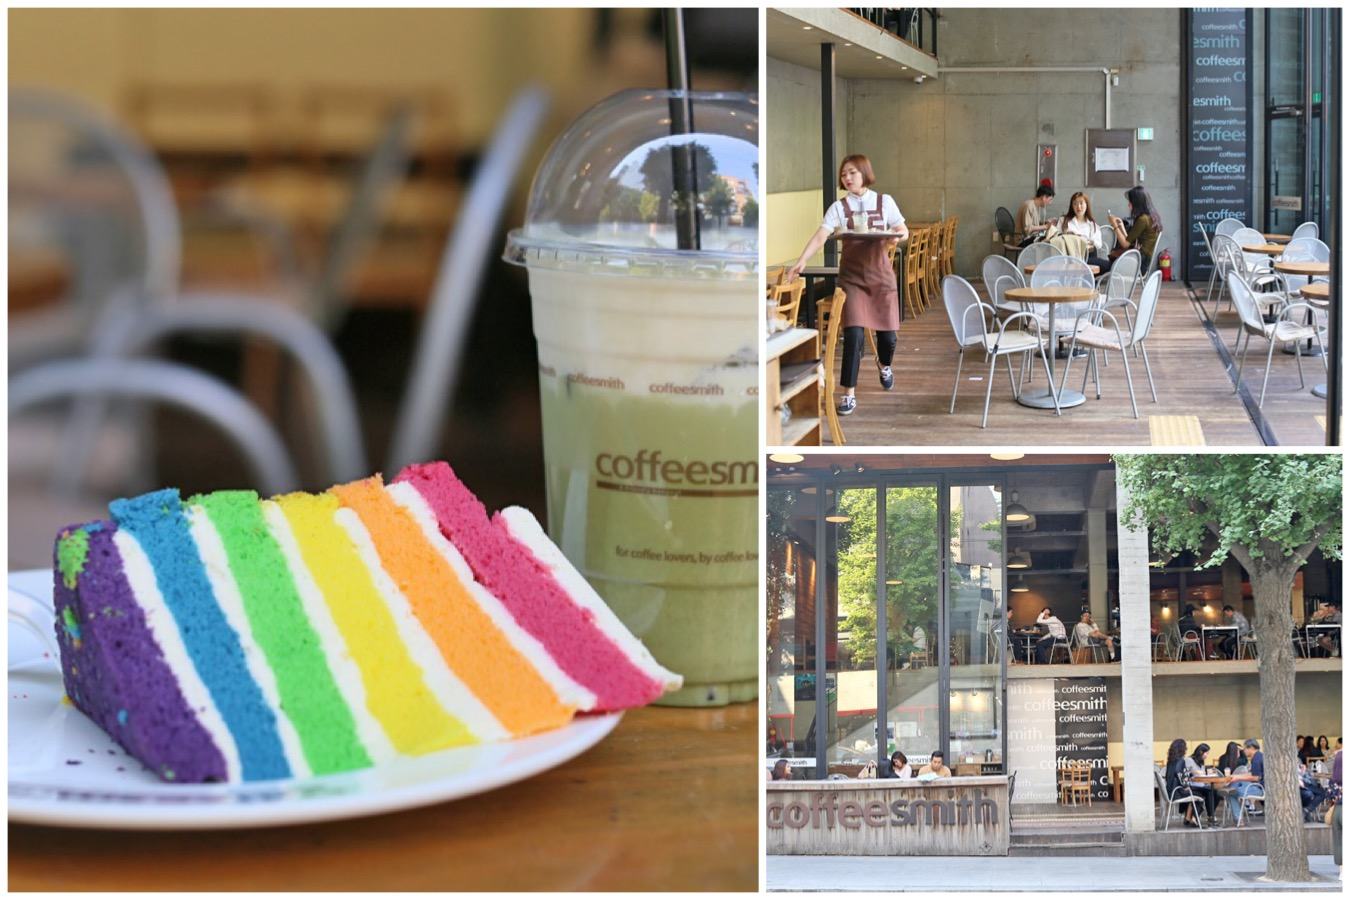 Coffeesmith – Gorgeous Space With Great Vibes, Coffee Place To People-Watch At Garosugil Seoul